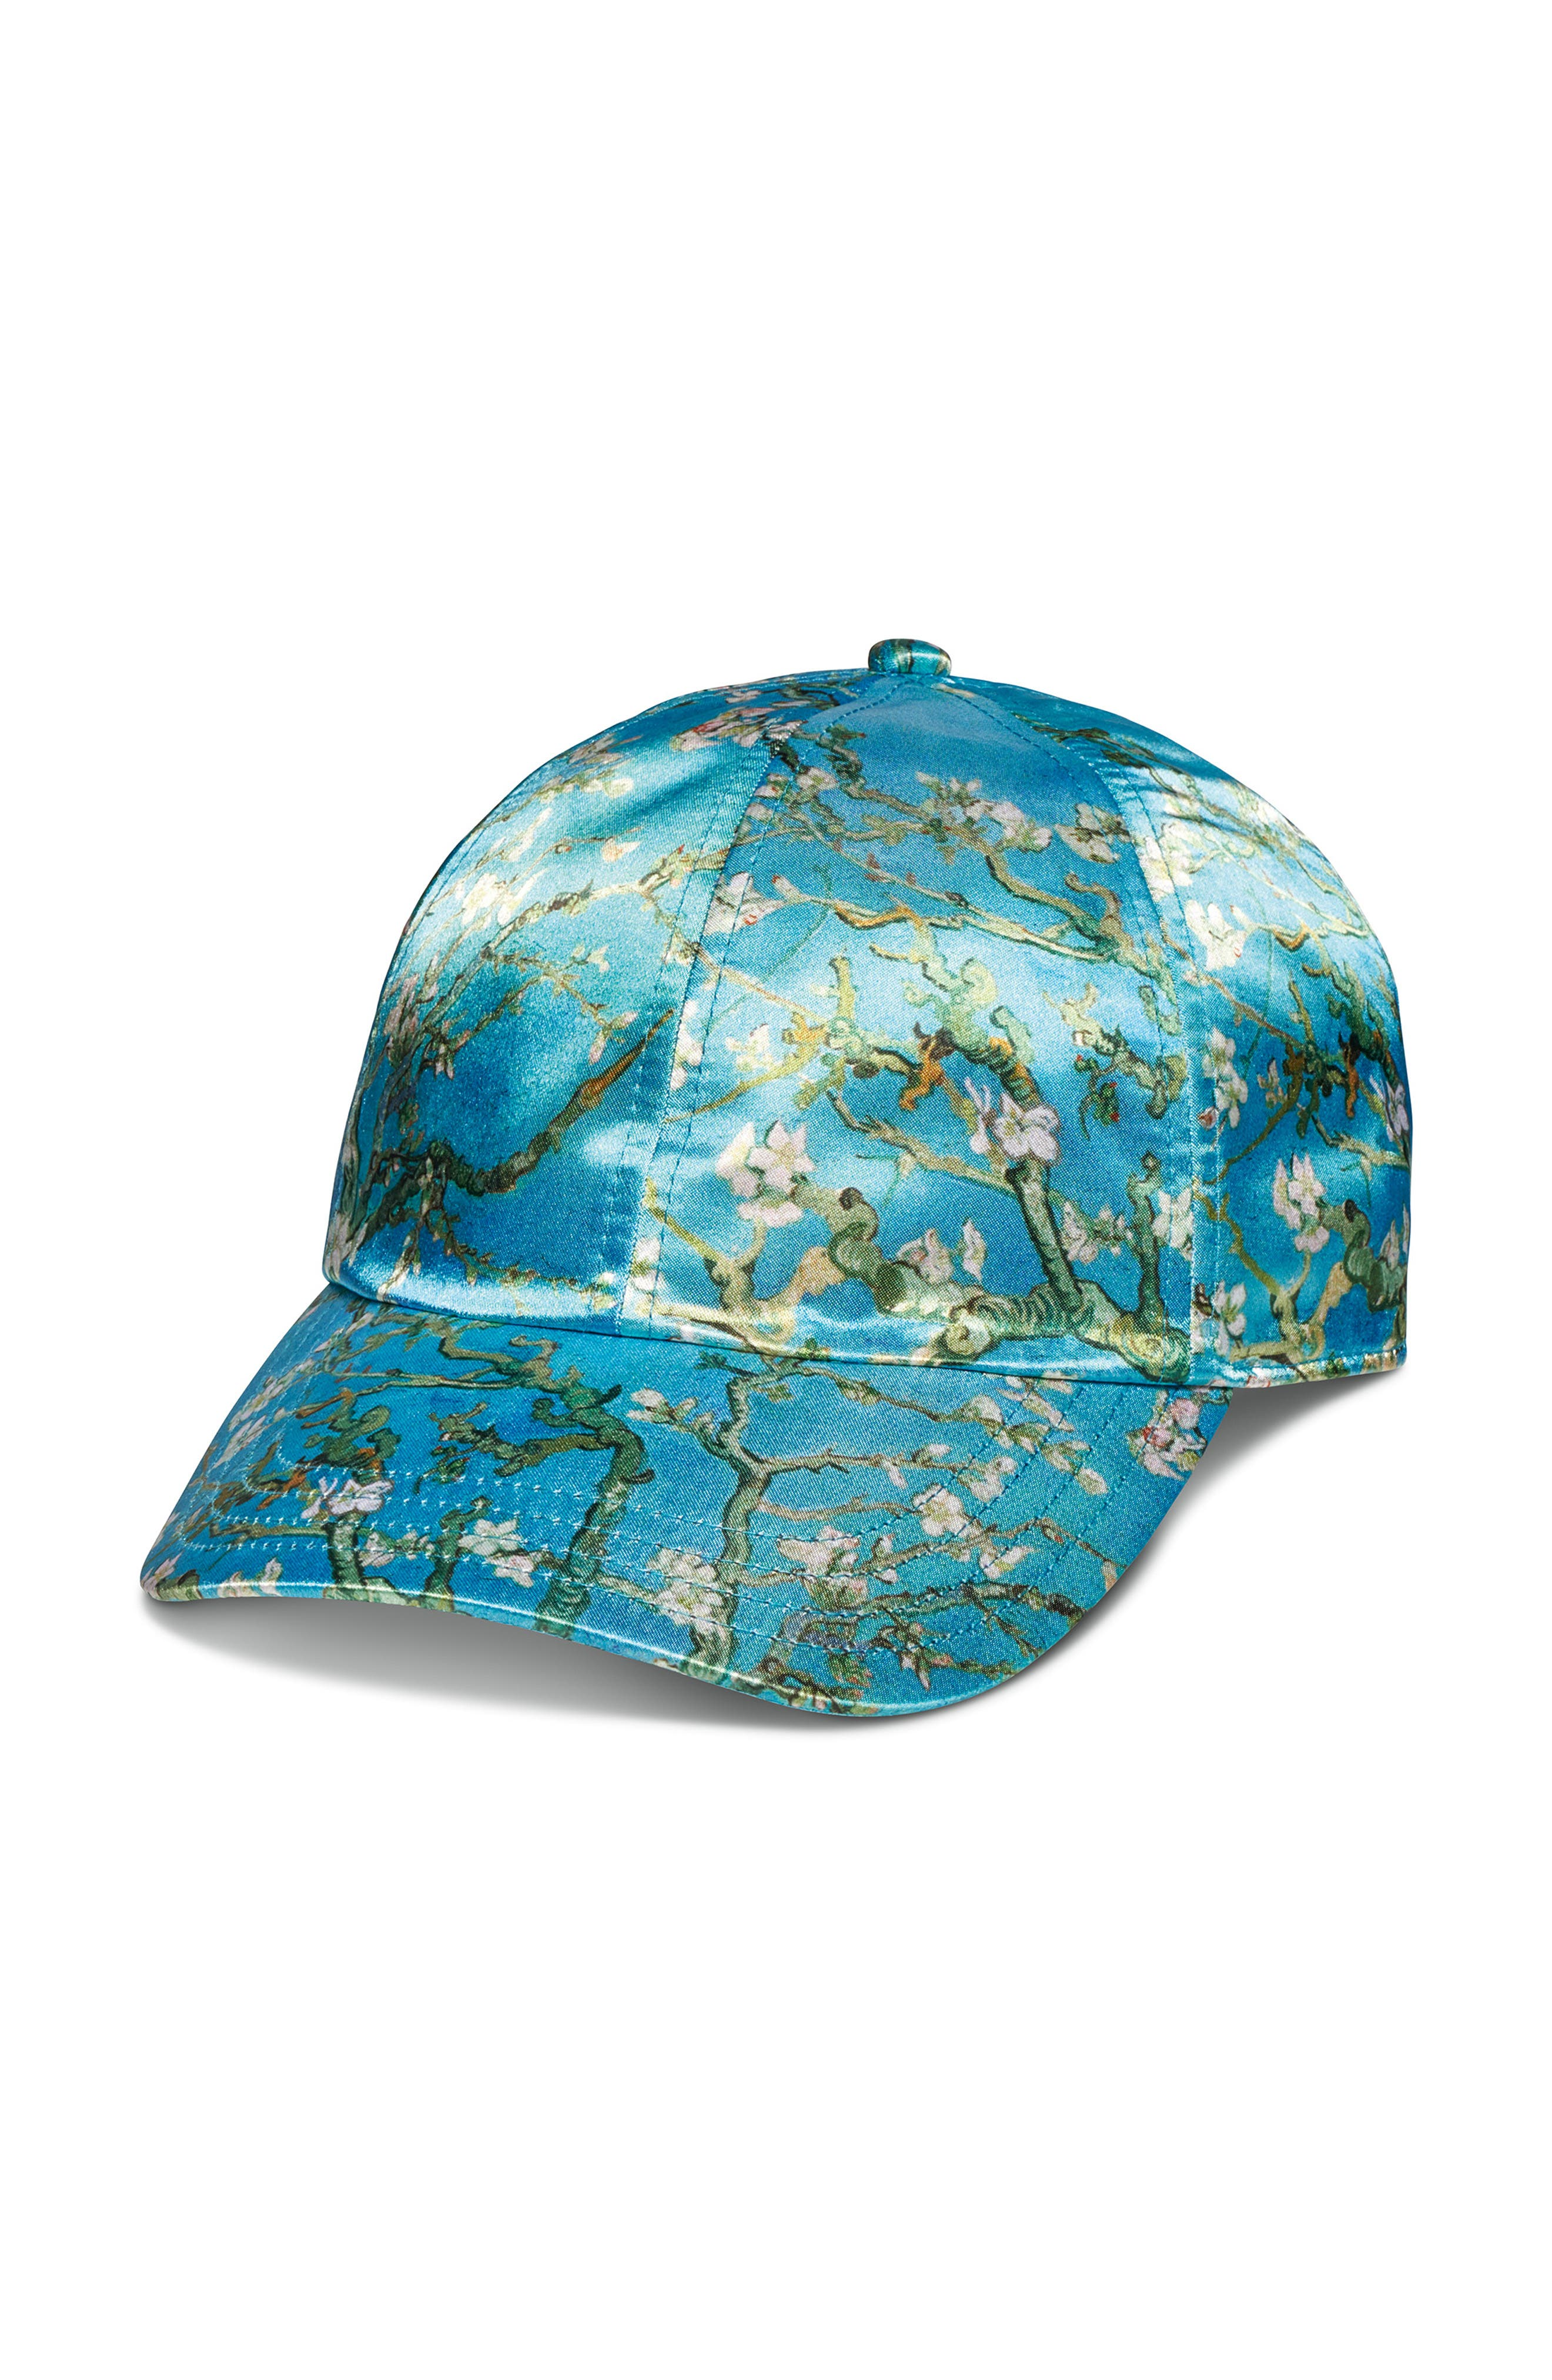 x Van Gogh Museum Almond Blossom Satin Baseball Cap,                             Main thumbnail 1, color,                             440